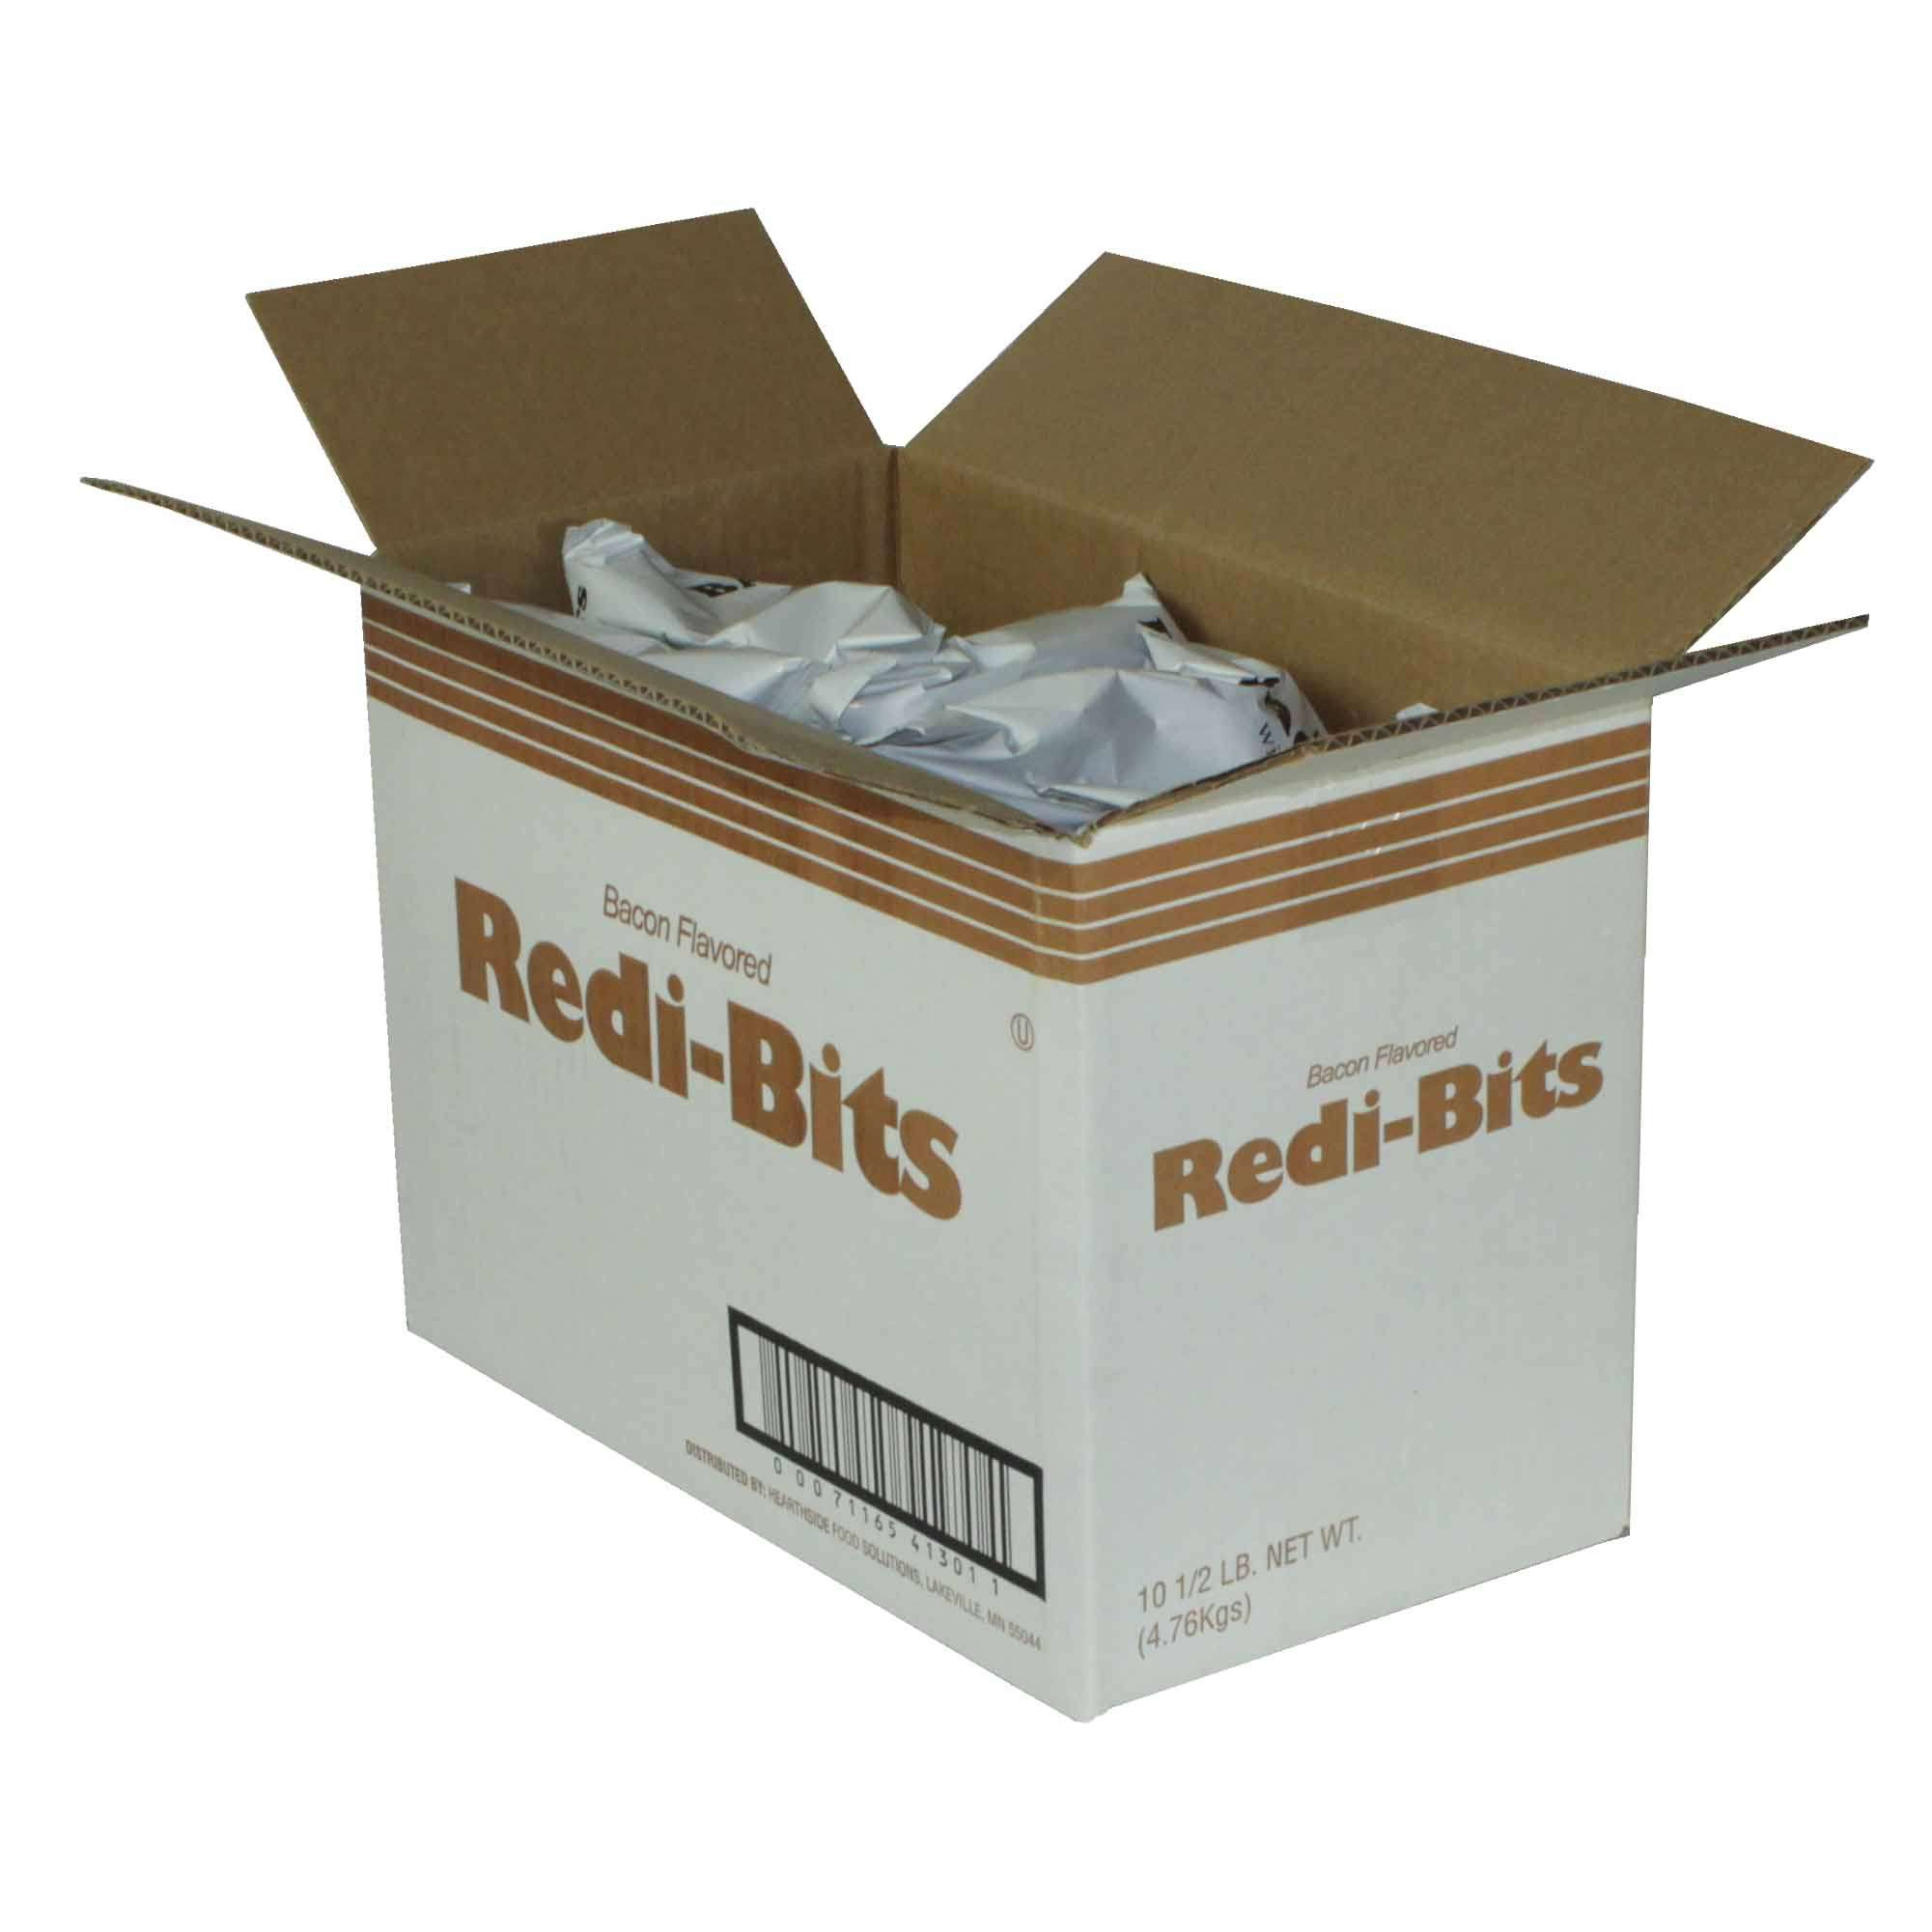 Redi-Bits Imitation Bacon Bits 12/14OZ